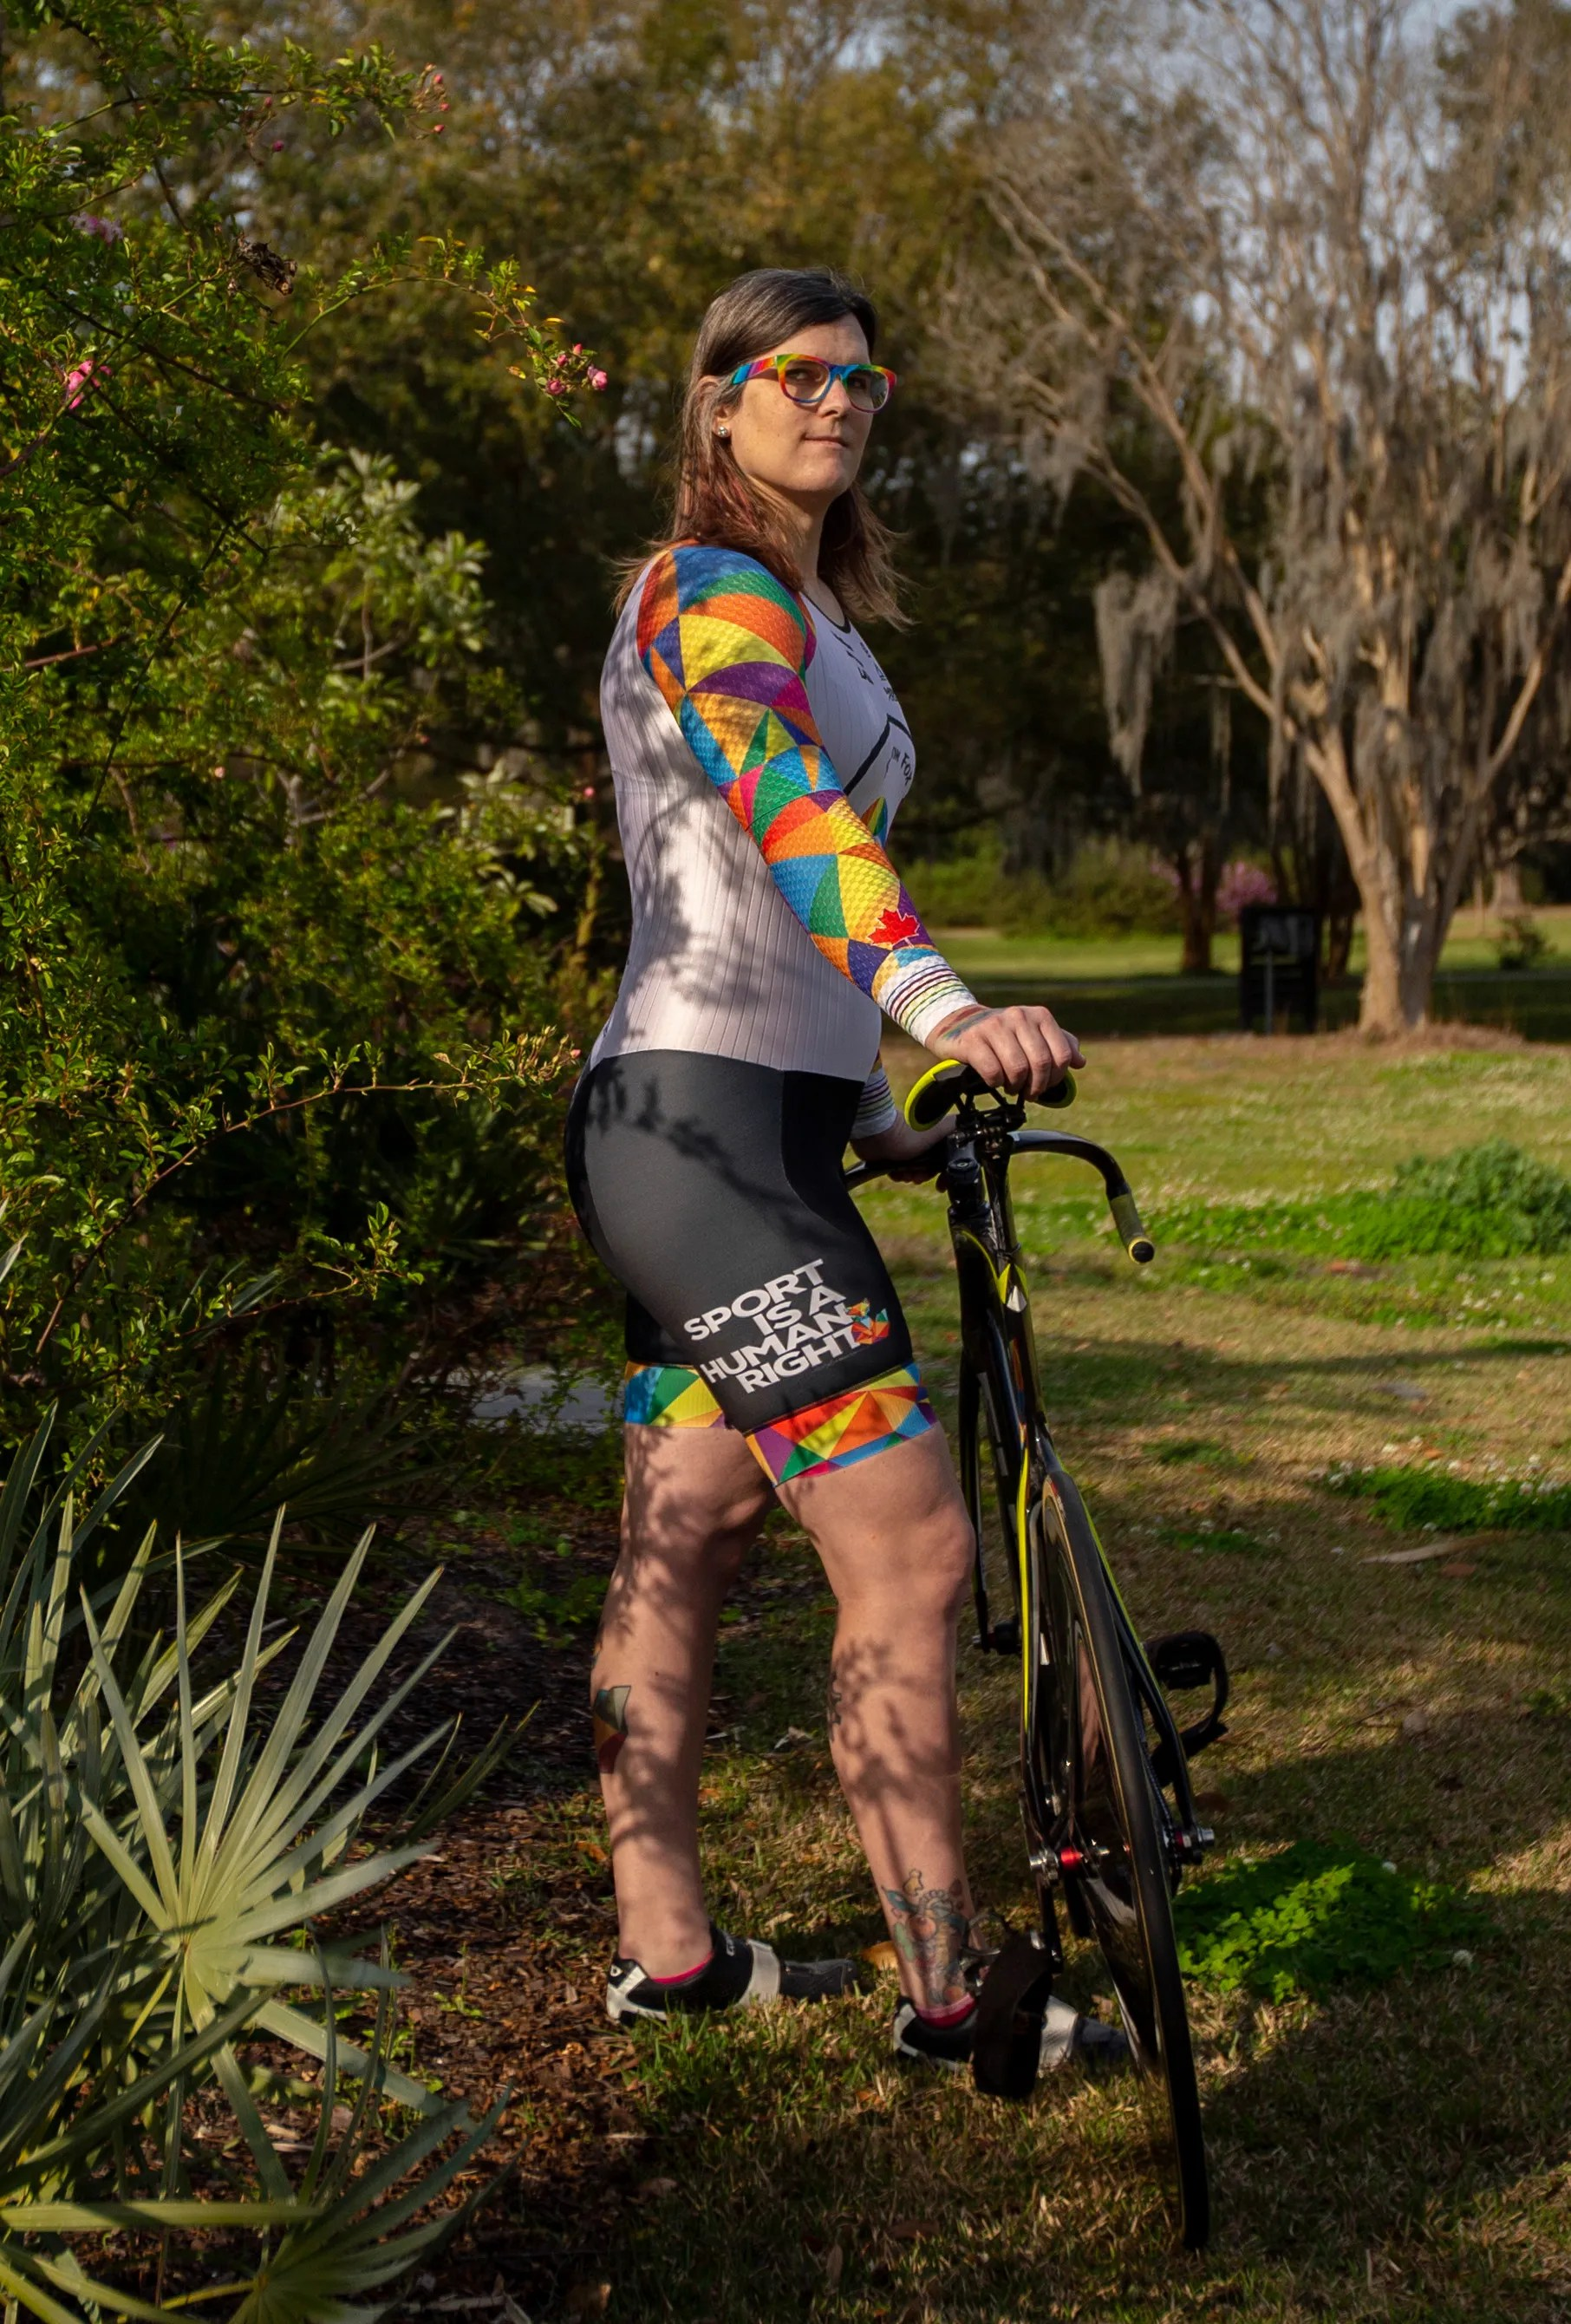 Veronica Ivy says she oftenfaces transphobic verbal attacks from spectators at cycling competitions.